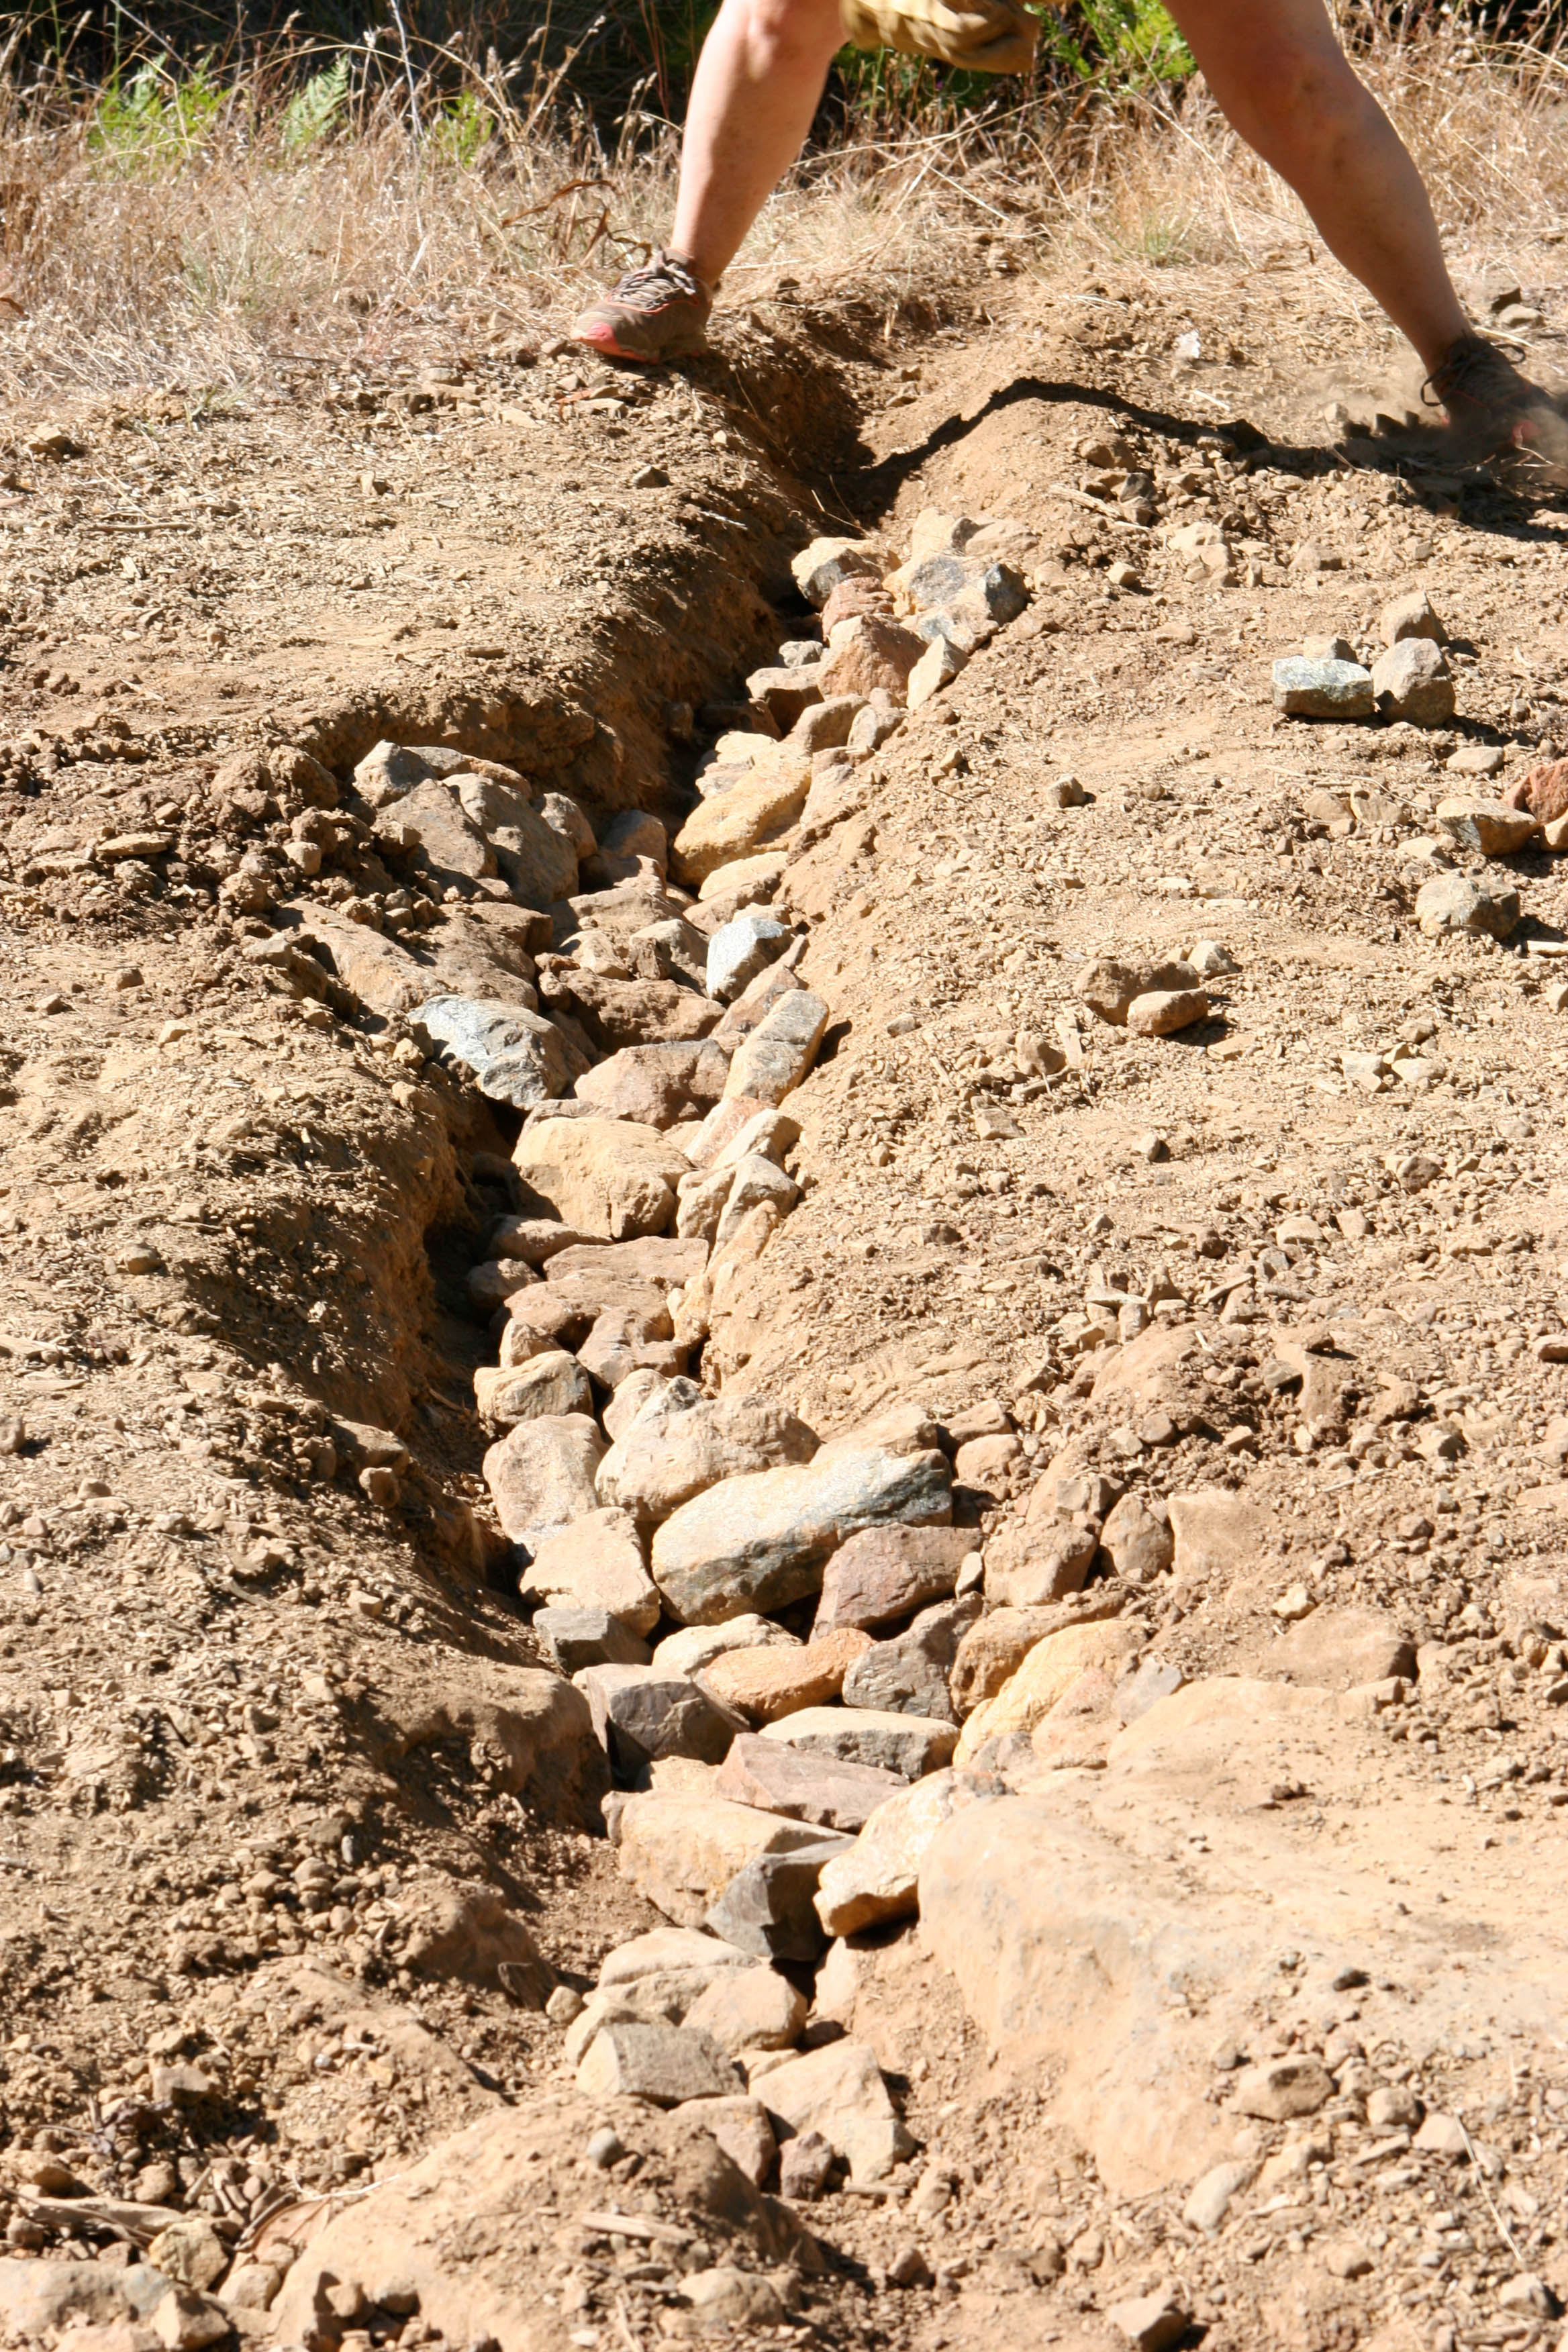 A newly dug ditch that washed away the following winter. Ugh.